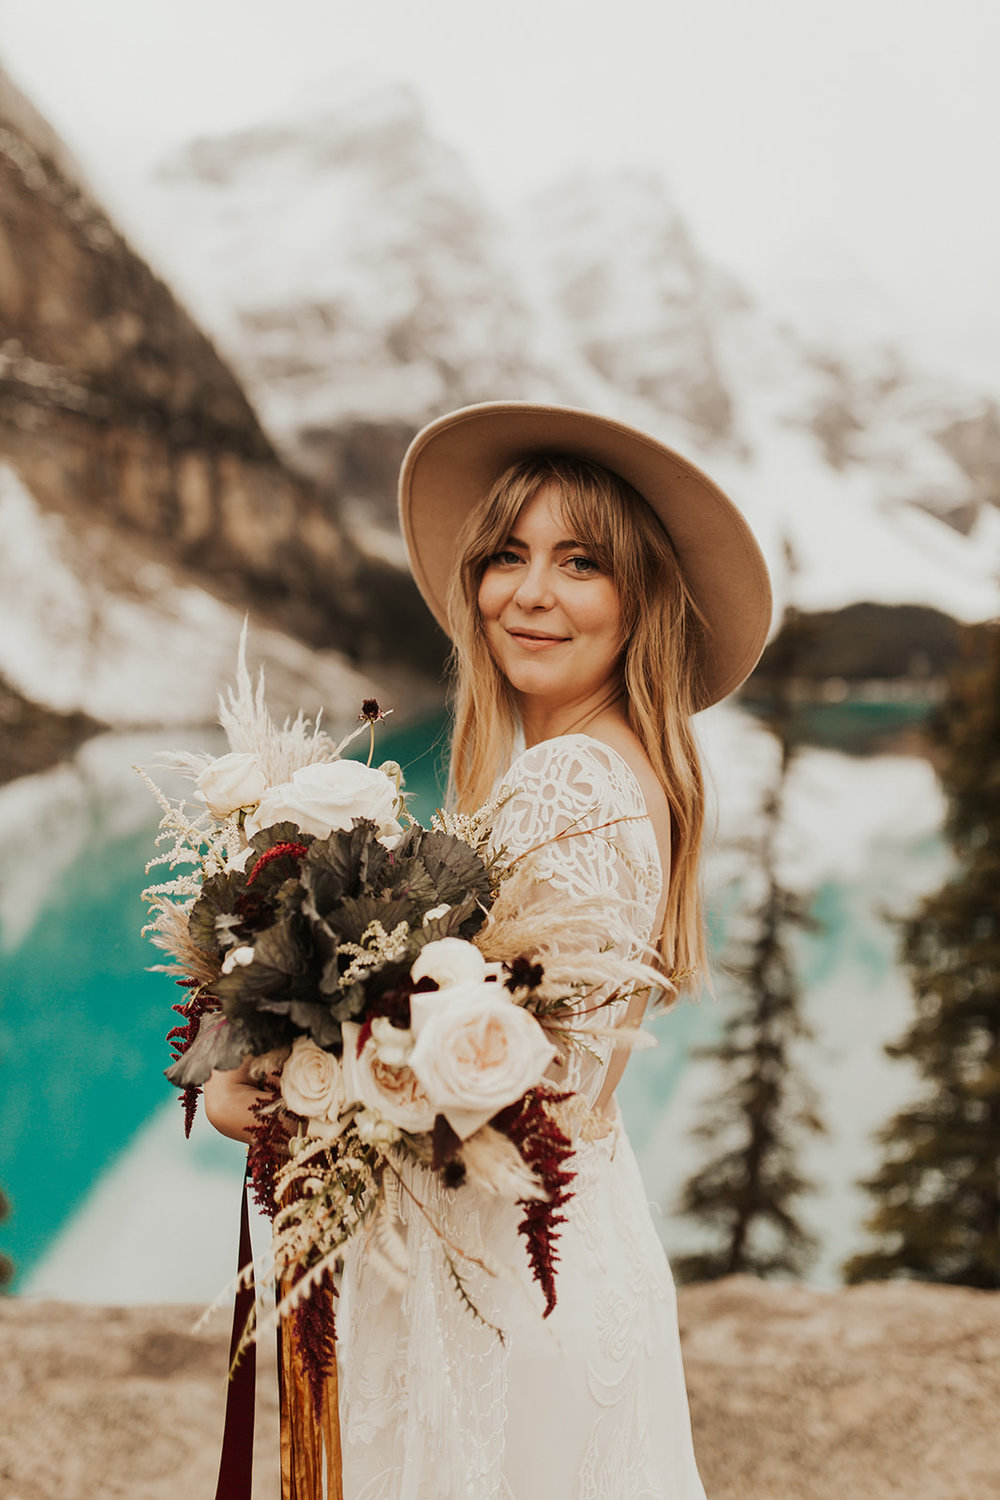 Banff Elopement l Lake Moraine Elopement l Vintage Bolo Tie l Pampas Grass Boho Boquet l Rue Design Wedding Dress l Banff Wedding Photographer l Destination Wedding Photographer l Katy Rose Photo_-106.jpg